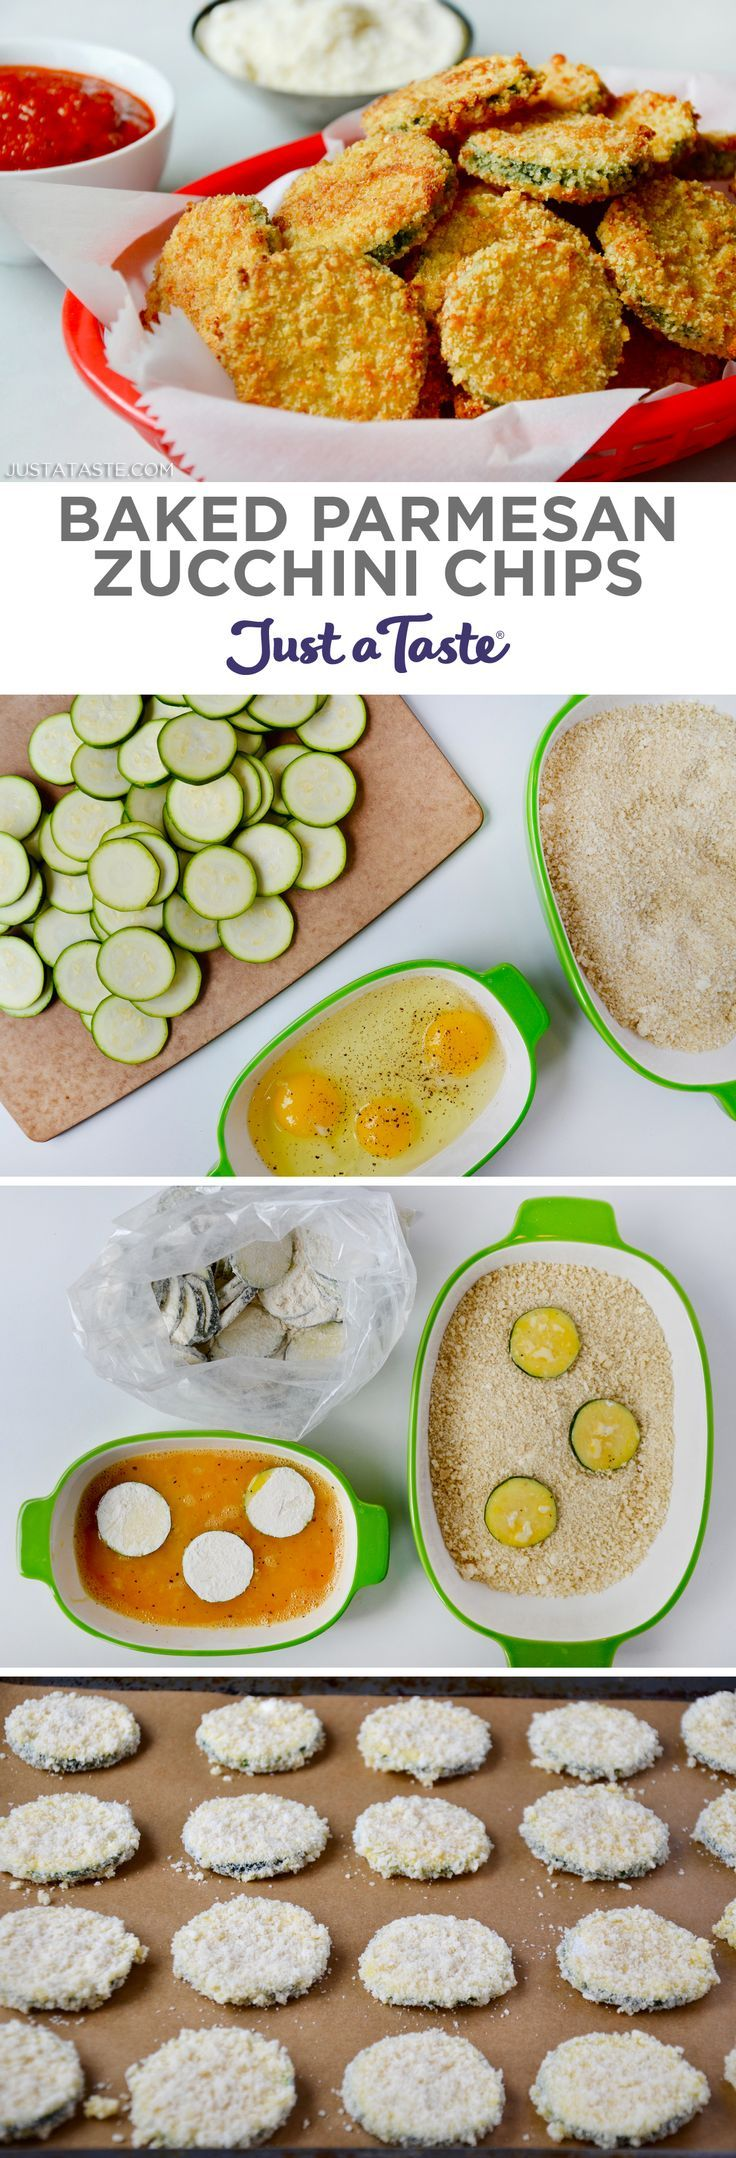 Baked Parmesan Zucchini Chips recipe from justataste.com #recipe #healthyrecipes #healthyeating #zucchini